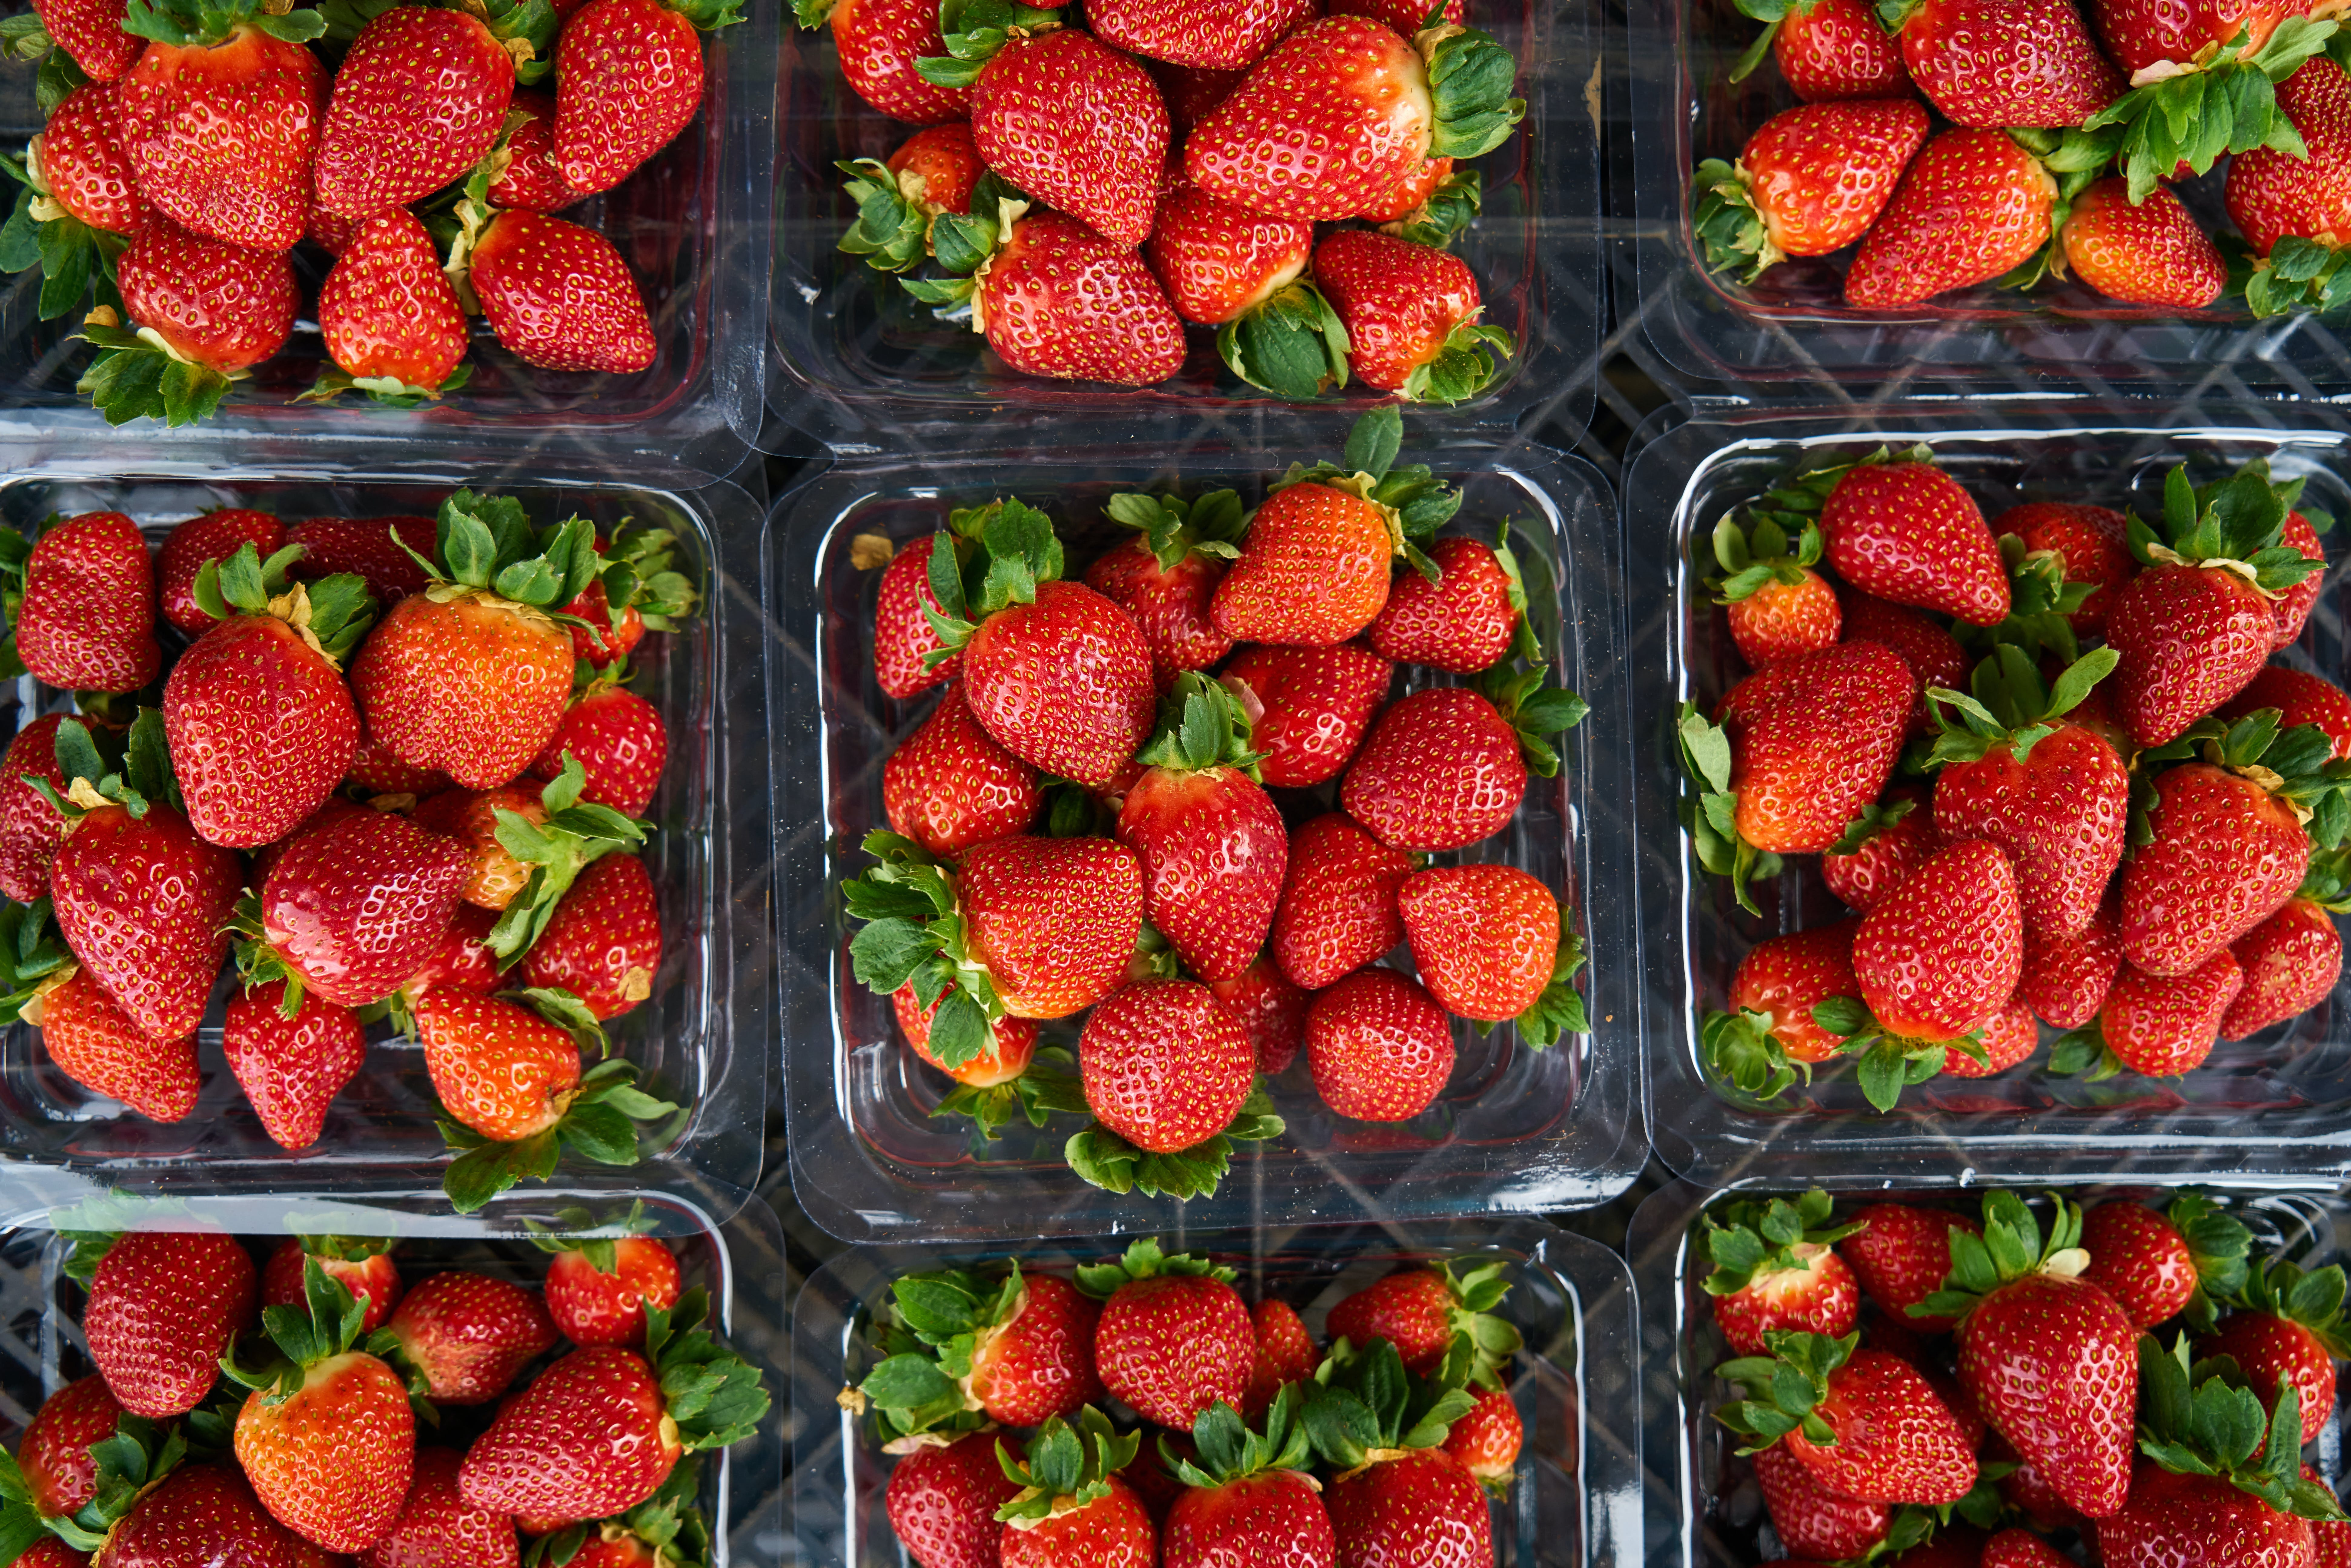 Top View Photo of Strawberries on Plastic Container